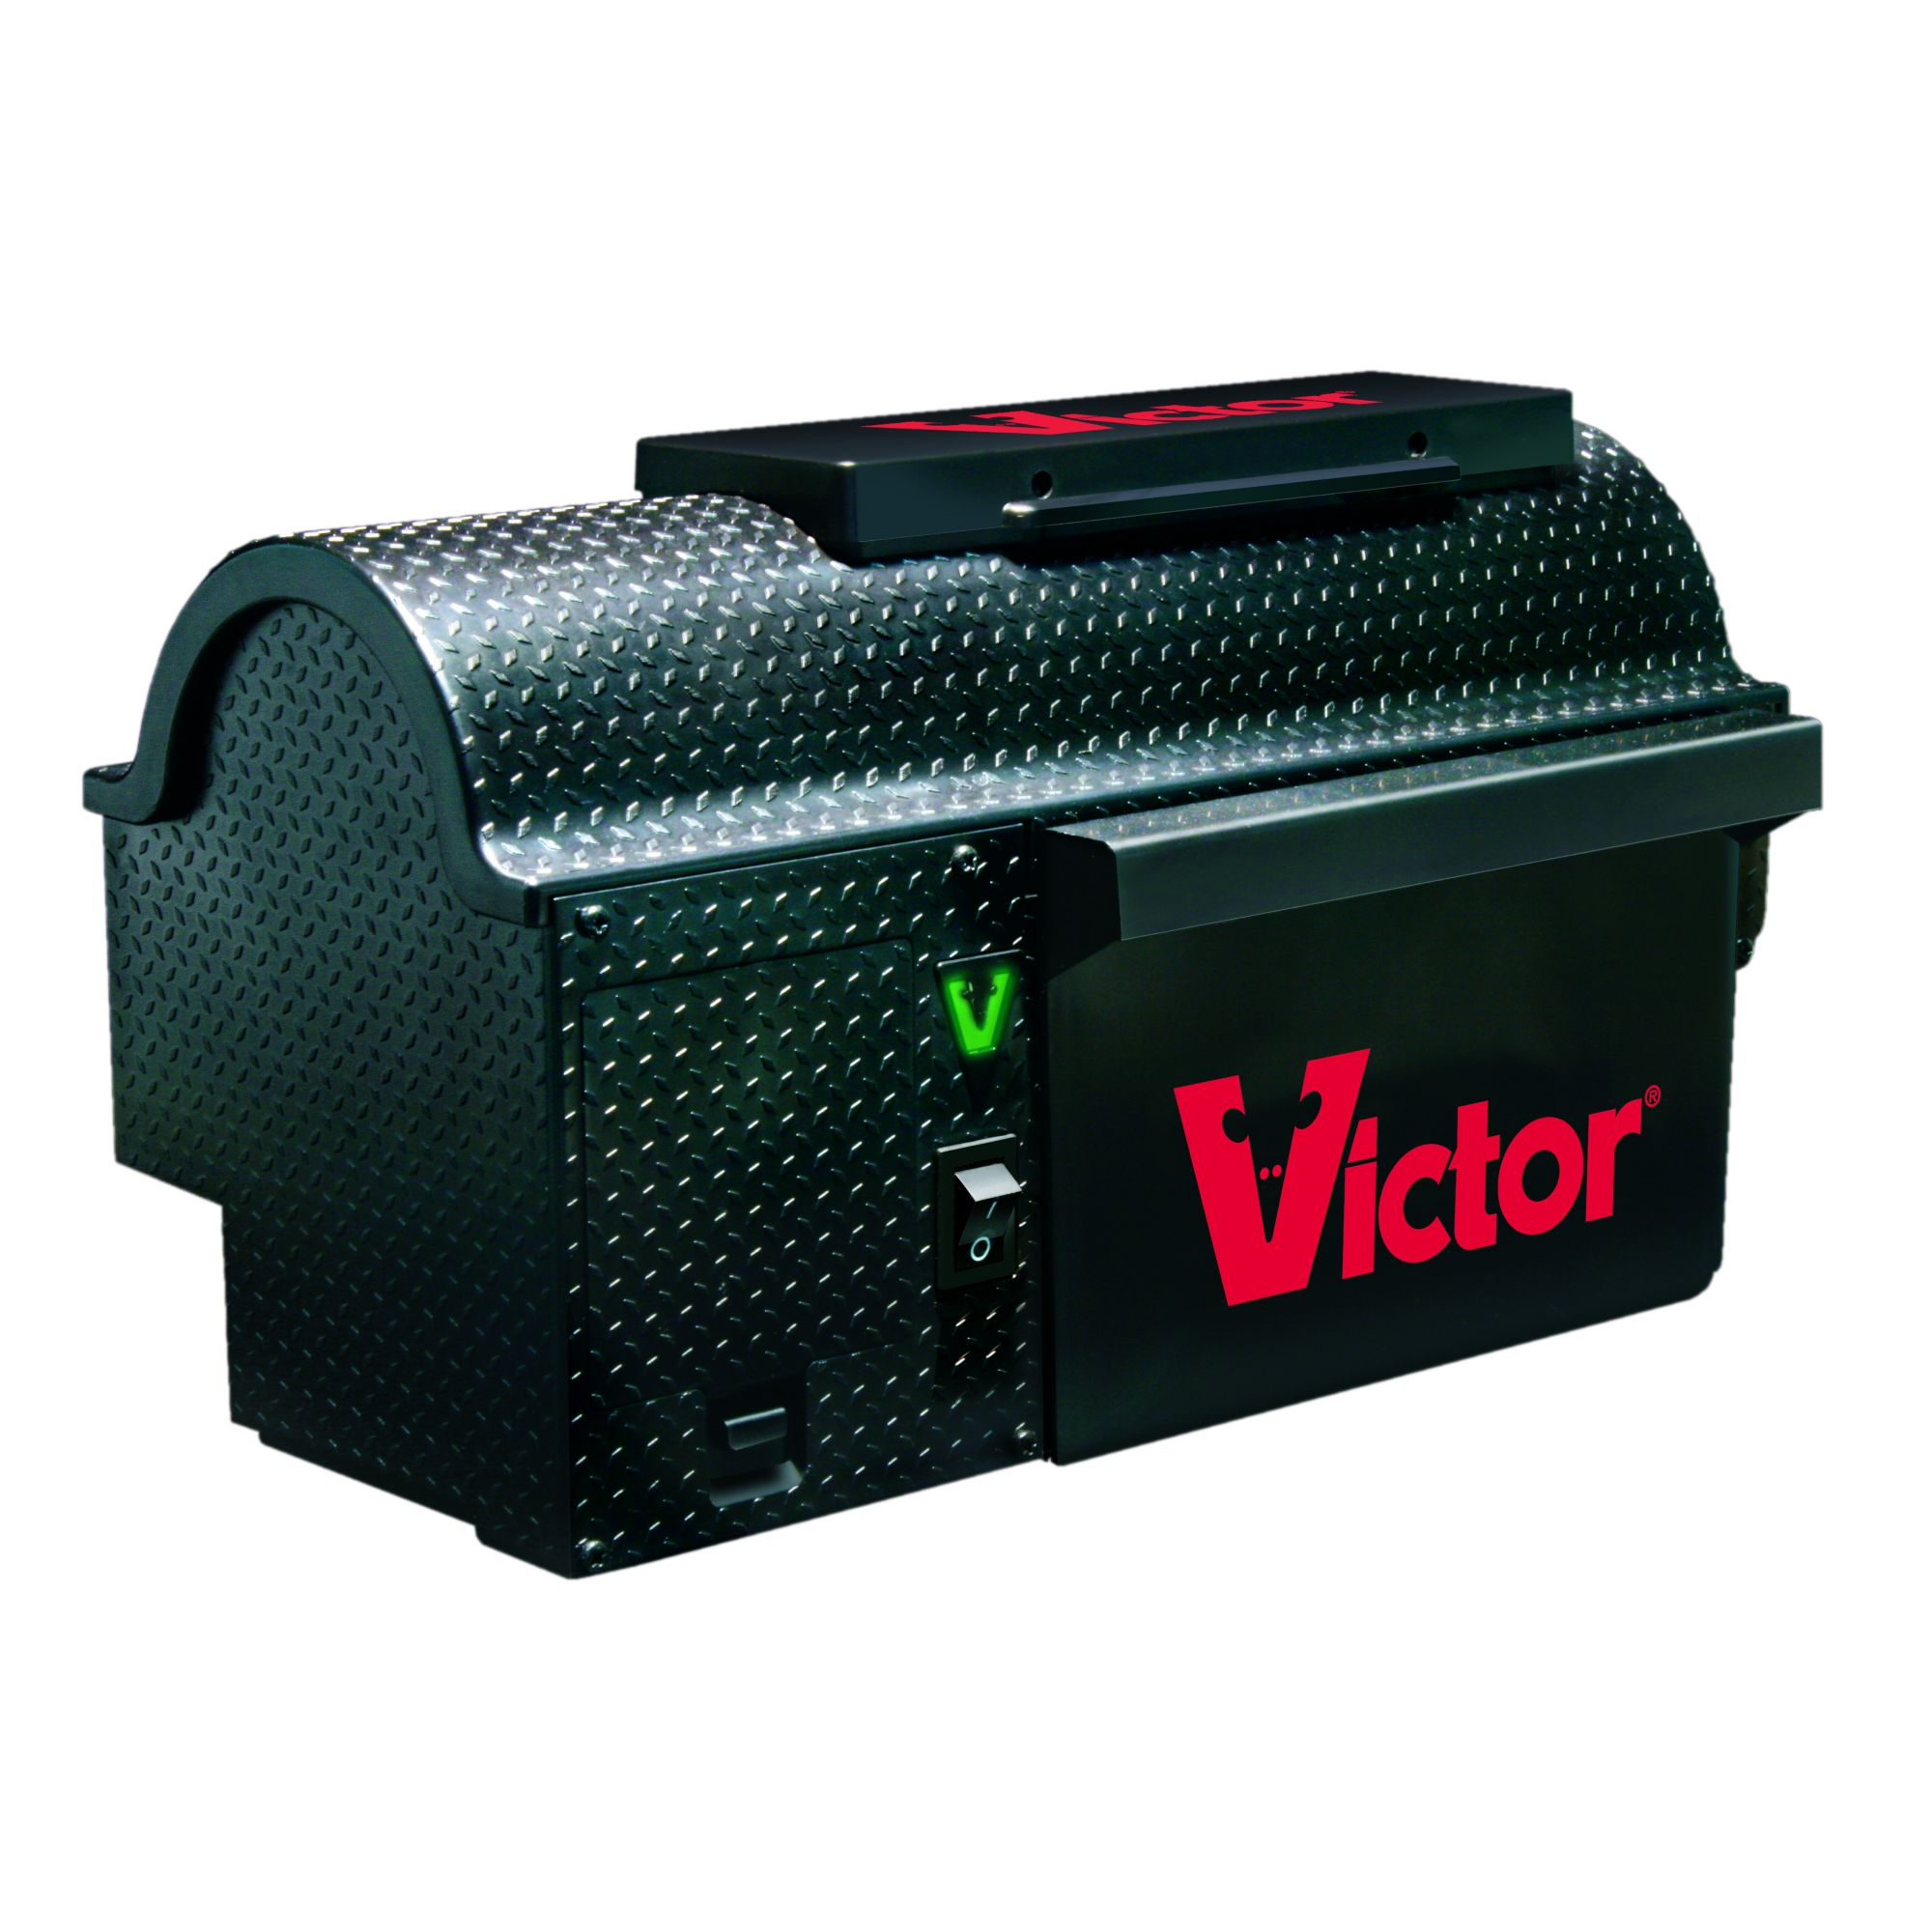 Victor MultiKill Electronic Mouse Trap Model M260